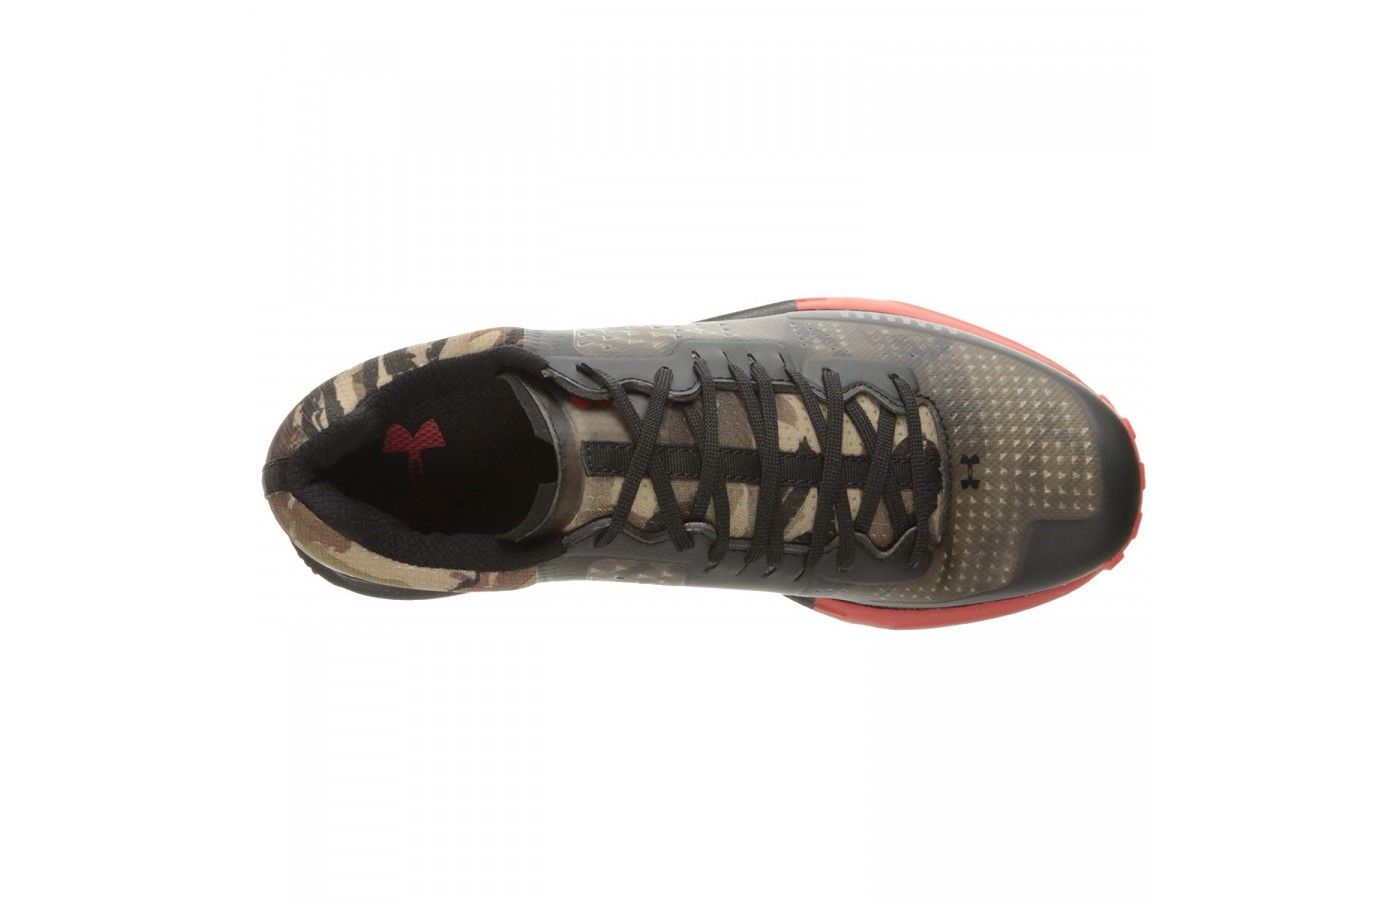 The Under Armour Horizon RTT offers a charged cushioning system that helps with impact reduction.